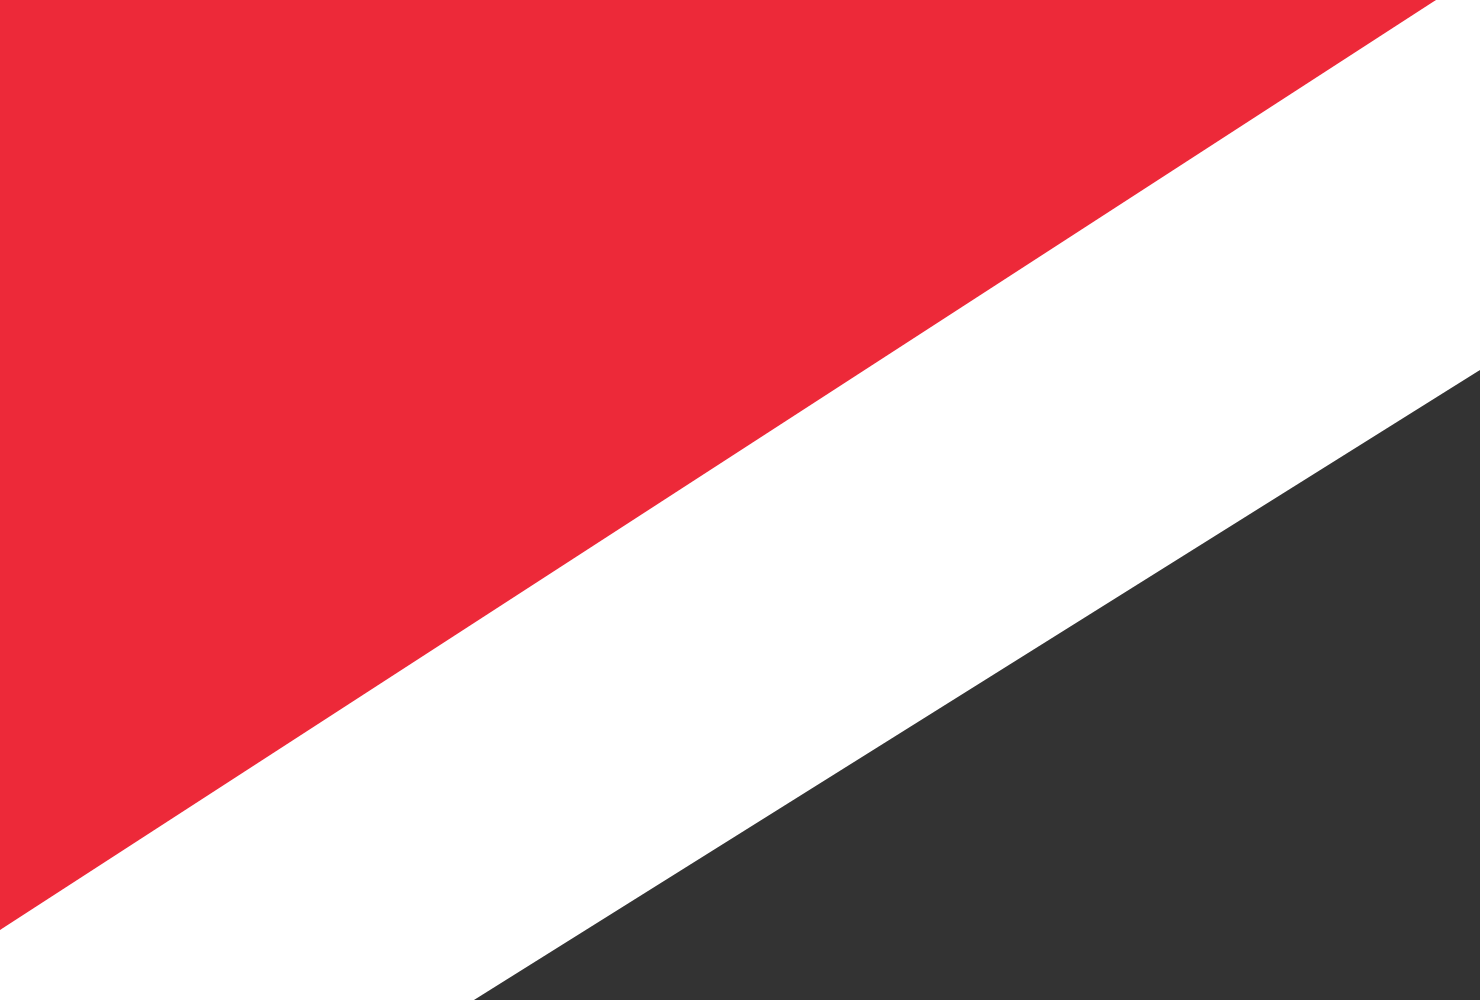 Sealand.jpg flag.png